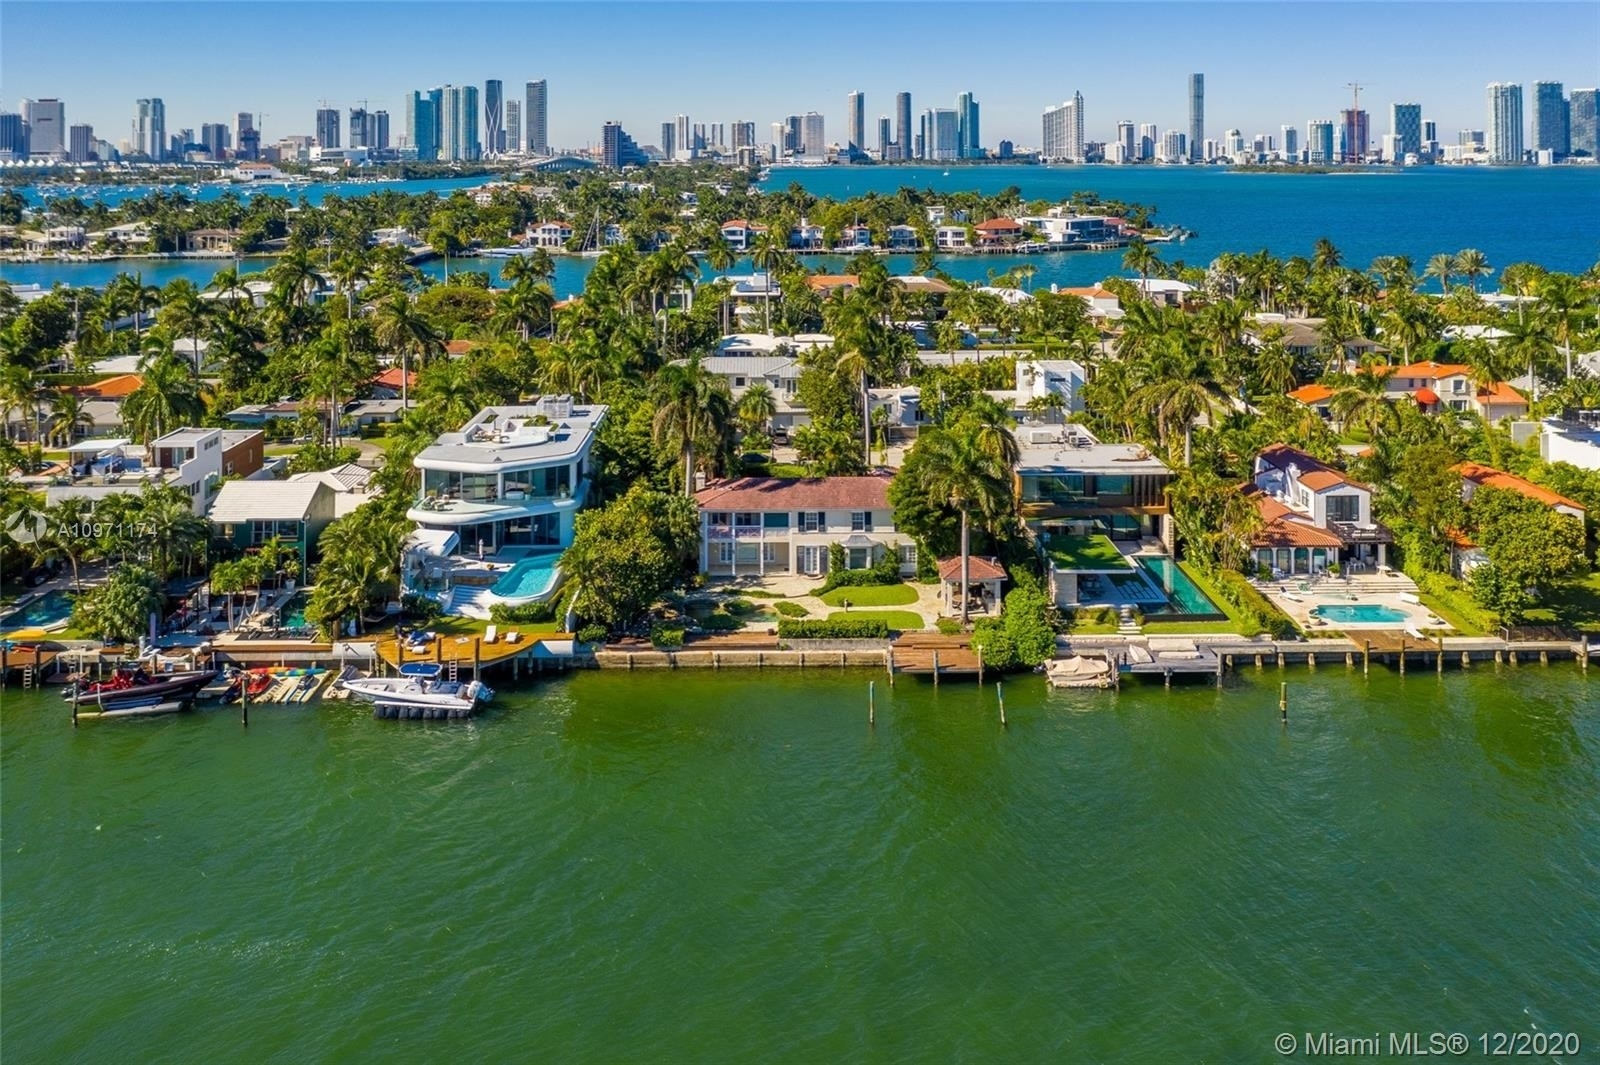 Single Family Home at South Beach, Miami Beach, FL 33139